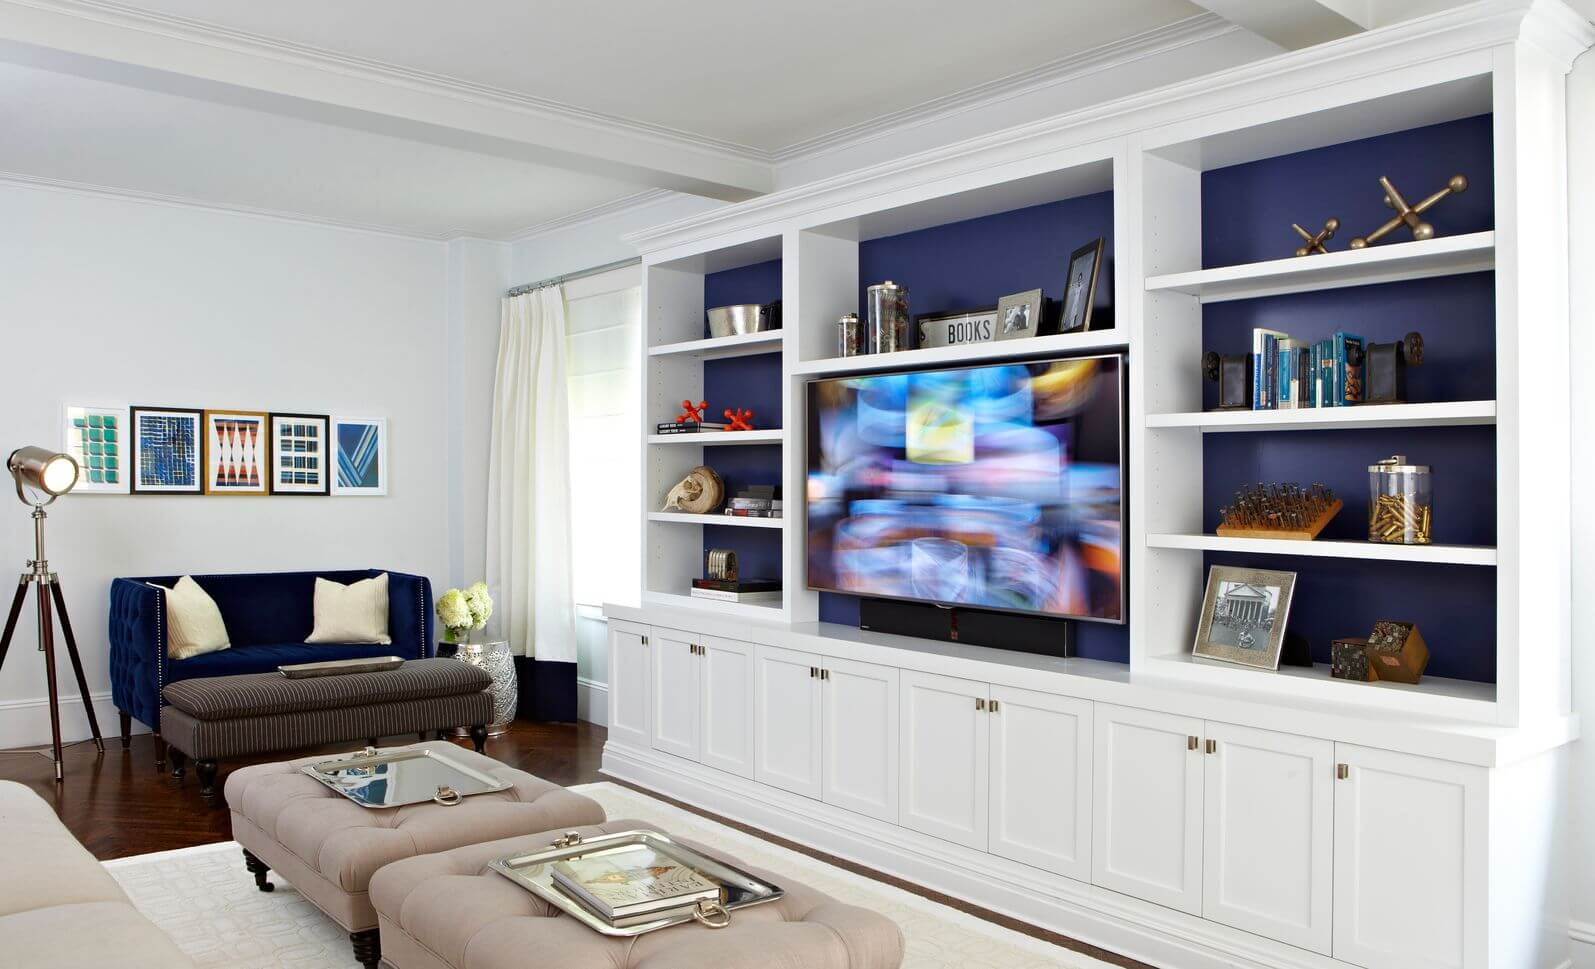 Blue and white living room - Bright White Walls And Cabinetry Contrast With Dark Natural Wood Flooring In This Living Room Featuring